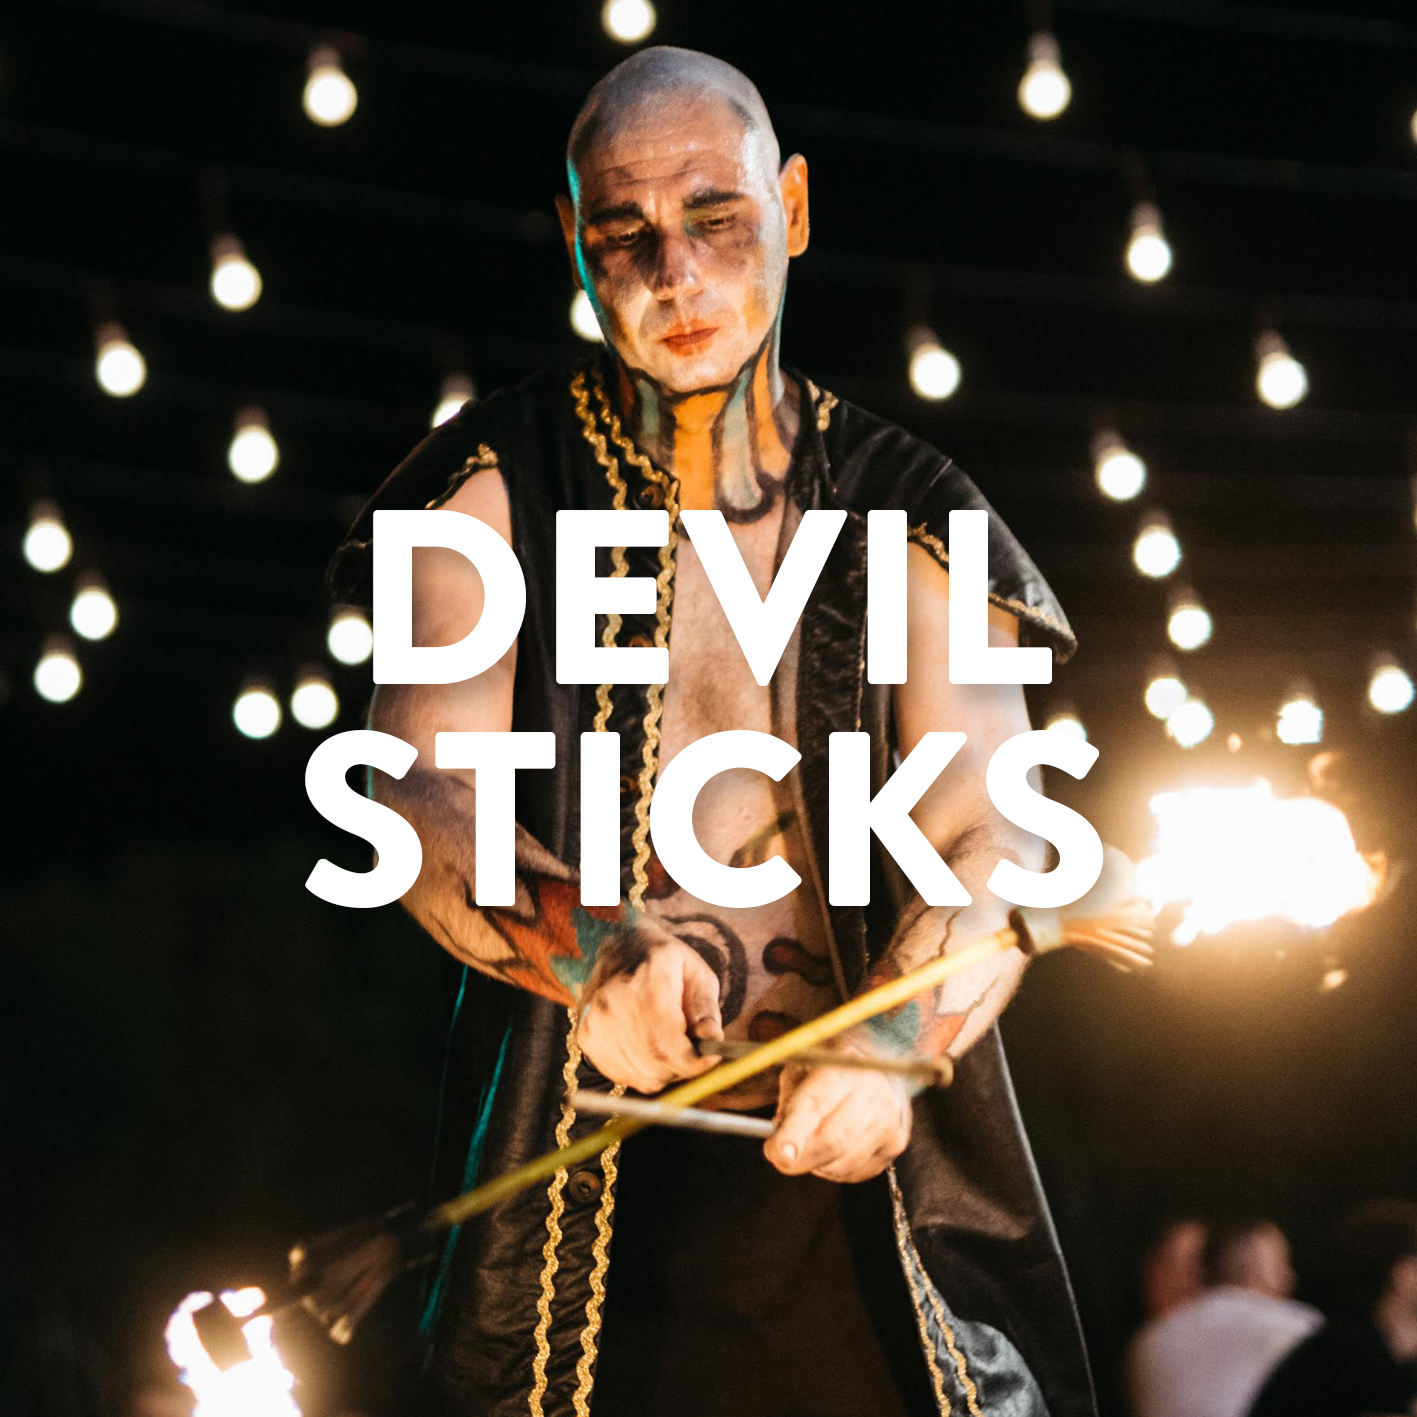 DEVIL STICKS.jpg